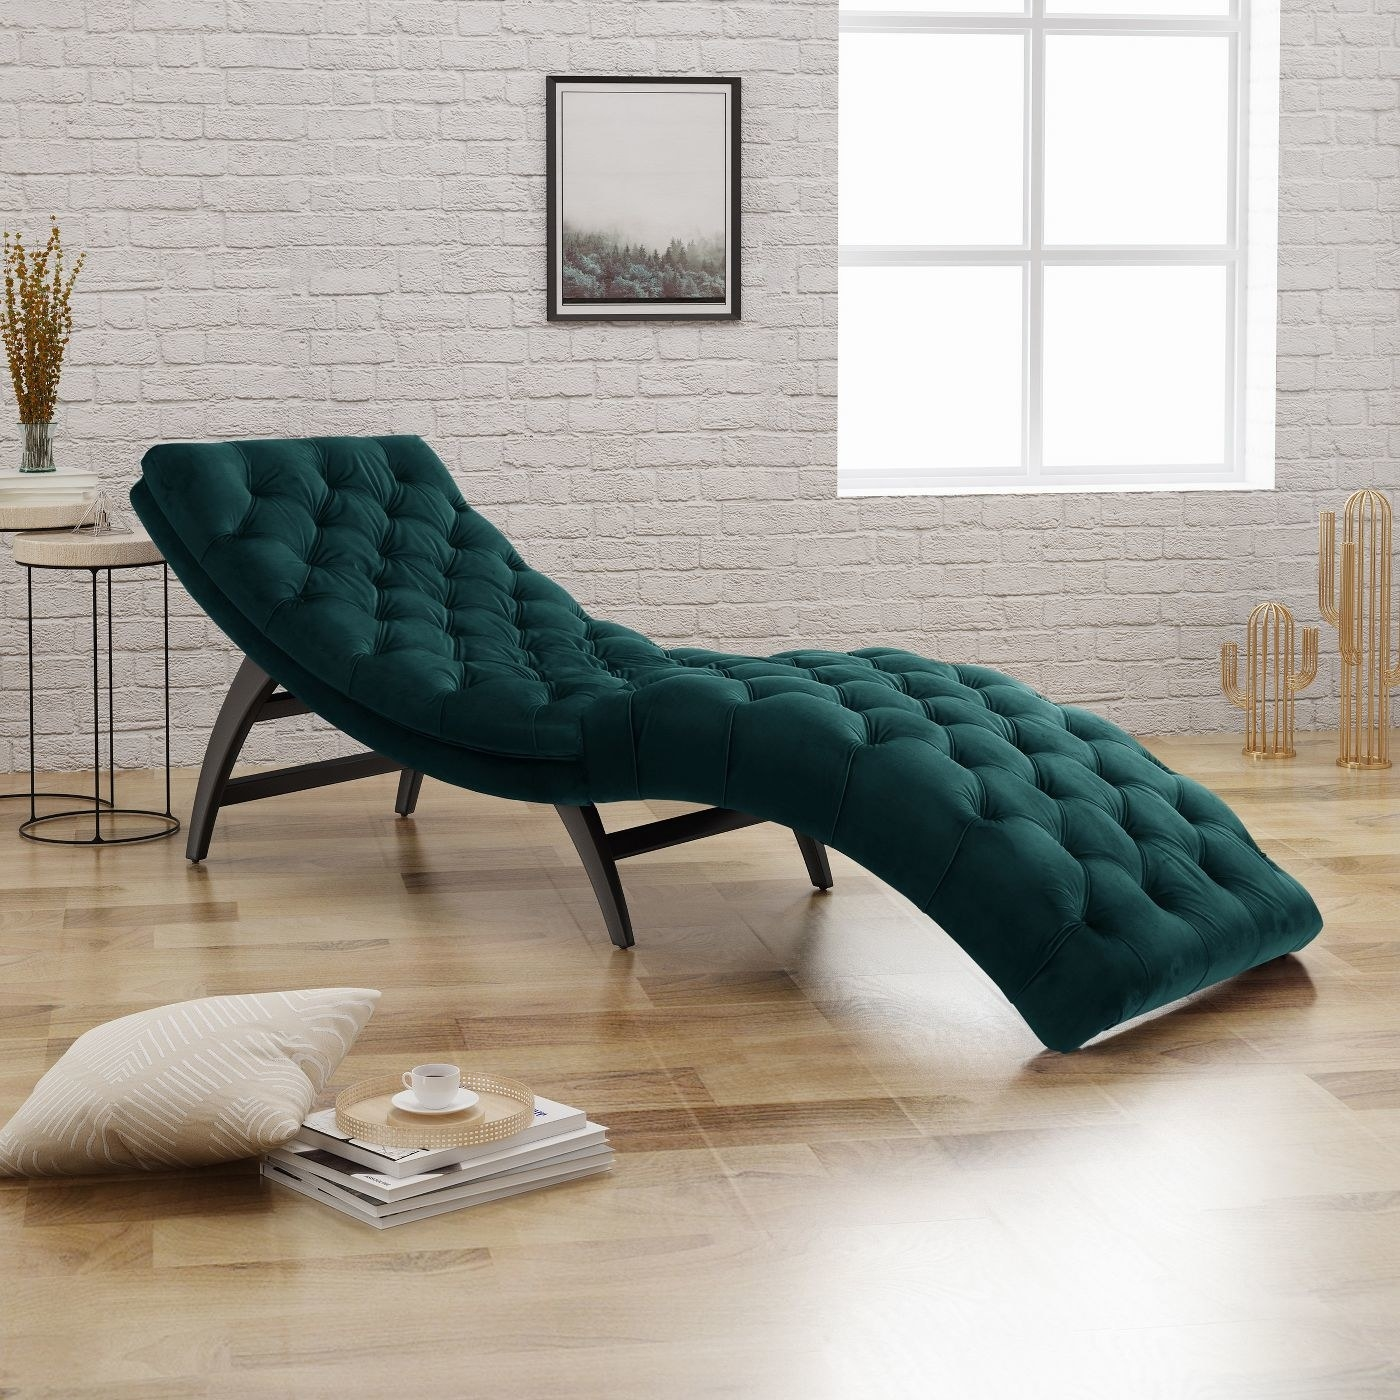 wave-shaped chaise lounger in dark teal with tufted fabric